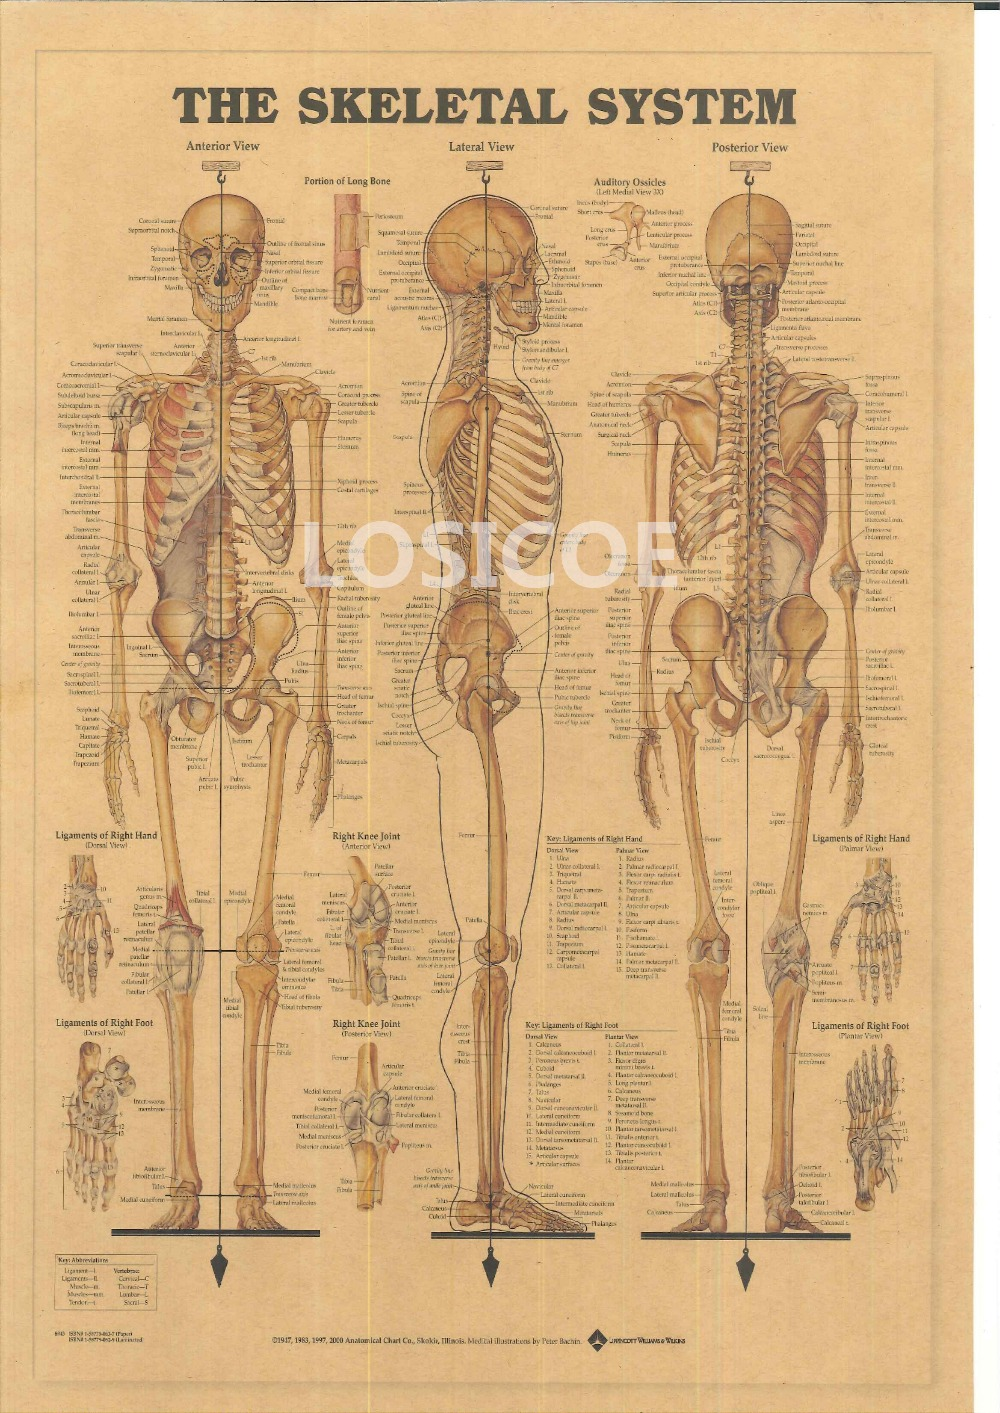 The Skeletal System Vintage Posters Kraft Paper Painting Wall